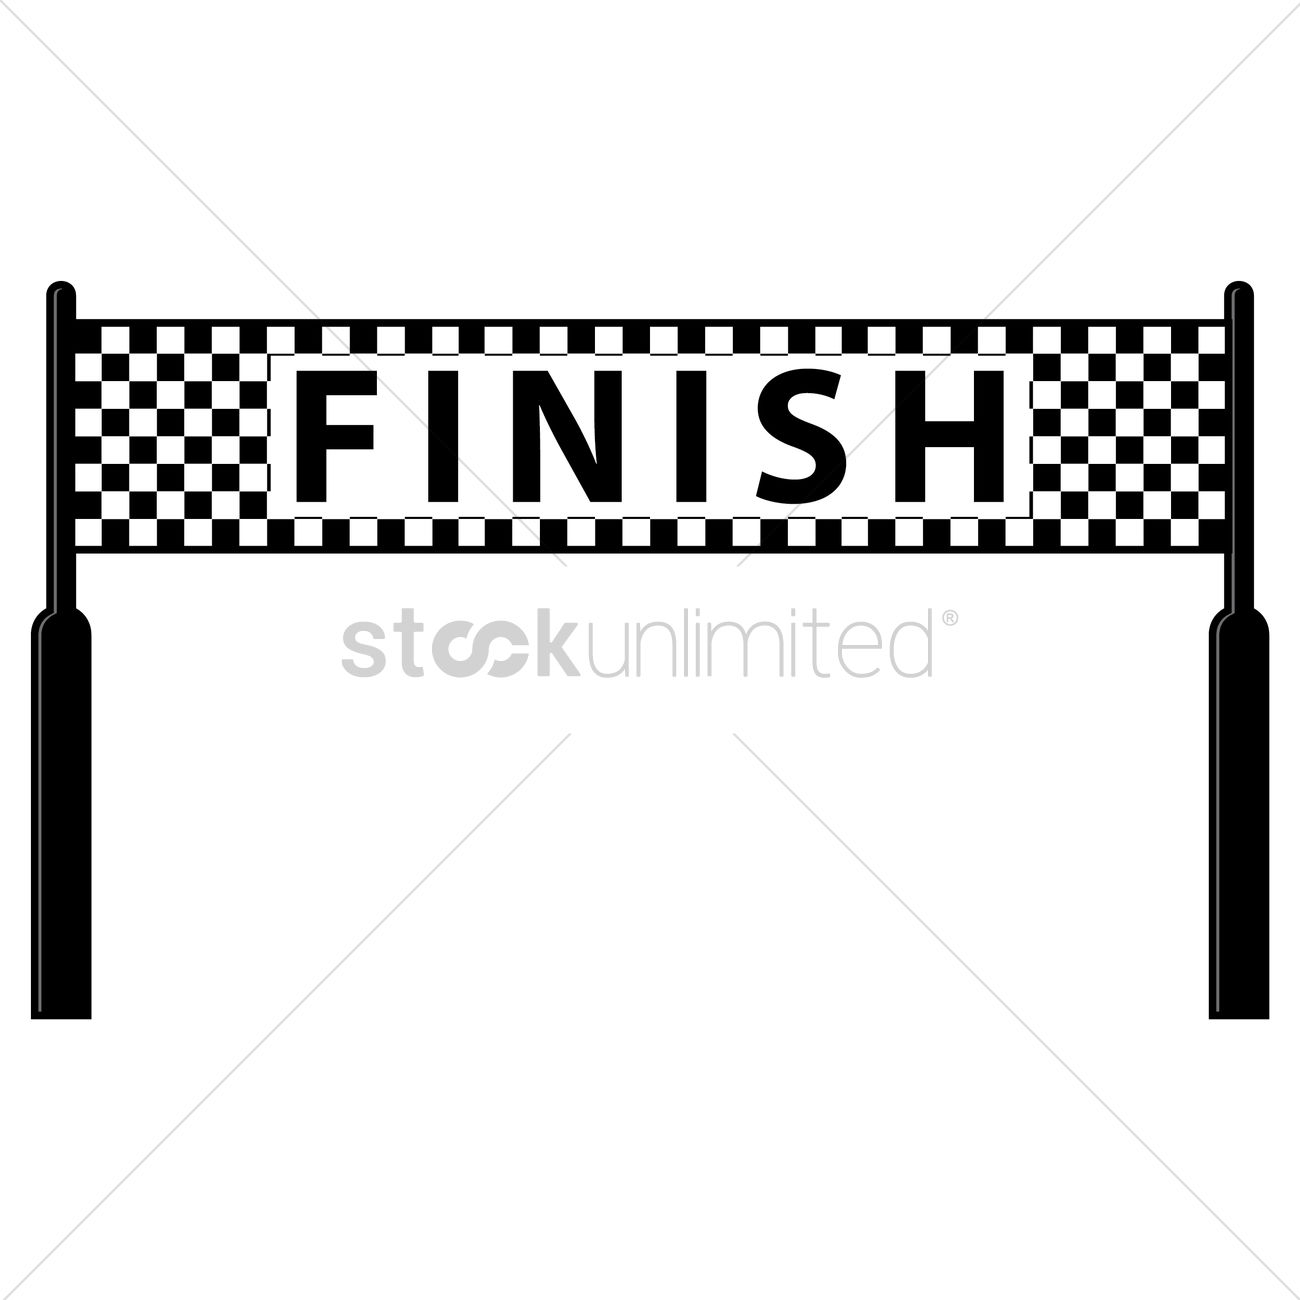 Finish Line Clipart 12 Clipart Station